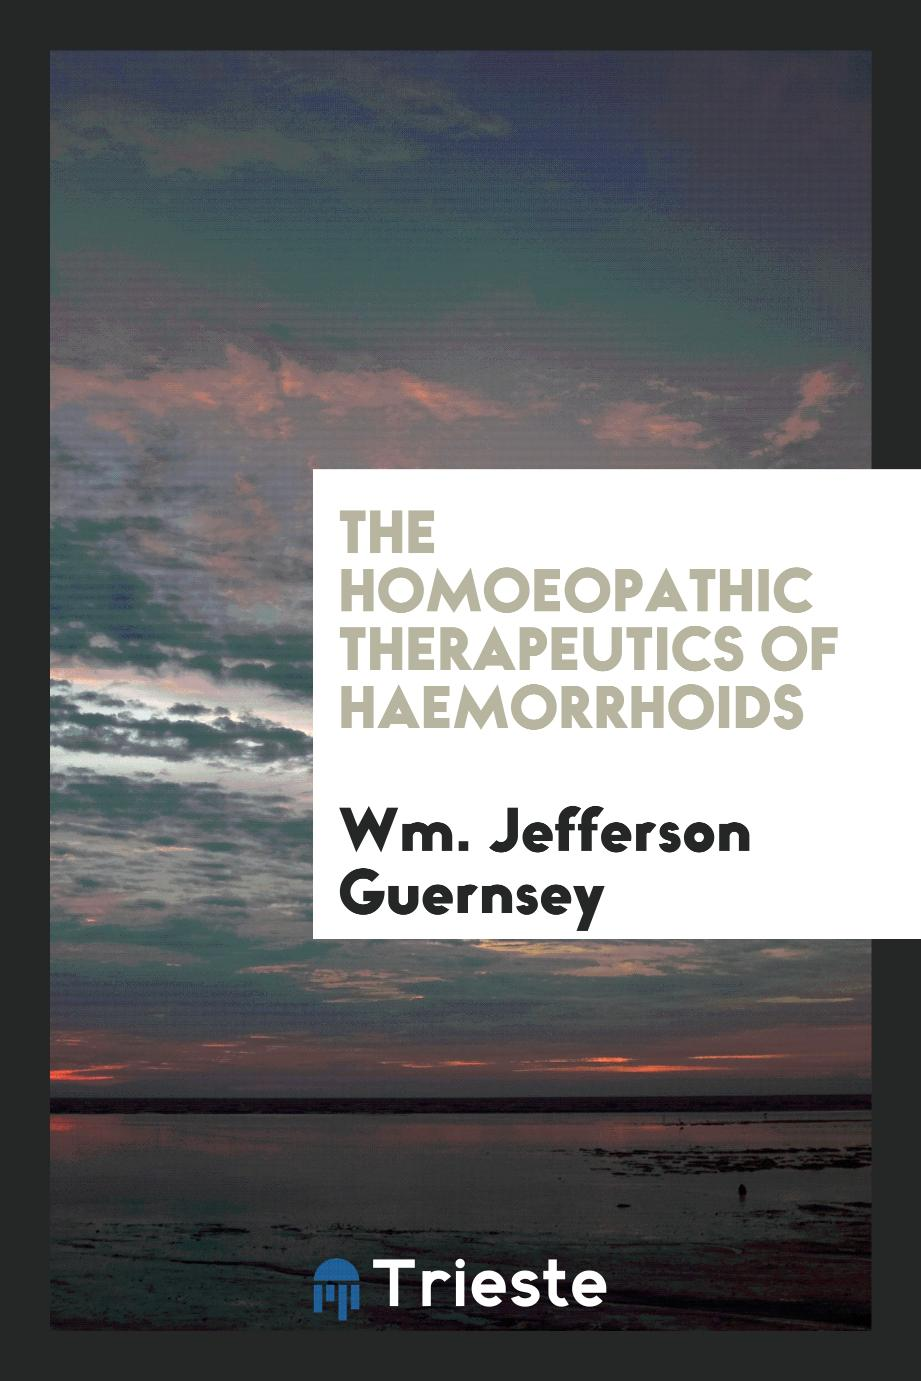 The Homoeopathic Therapeutics of Haemorrhoids